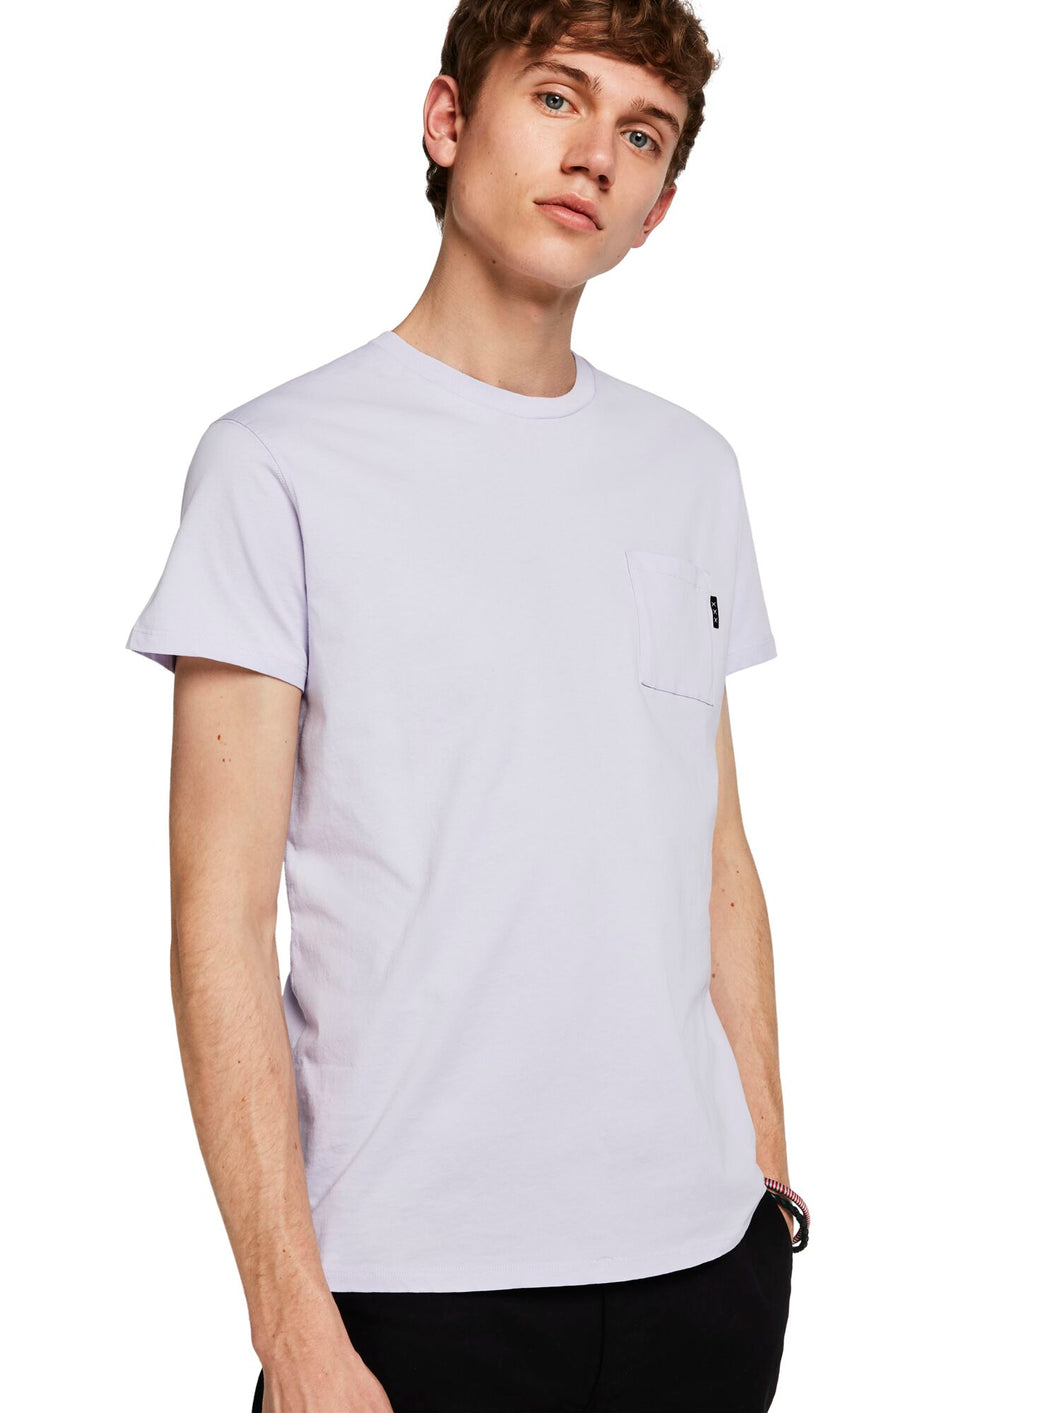 SCOTCH & SODA - Pocket Tee - Lavender